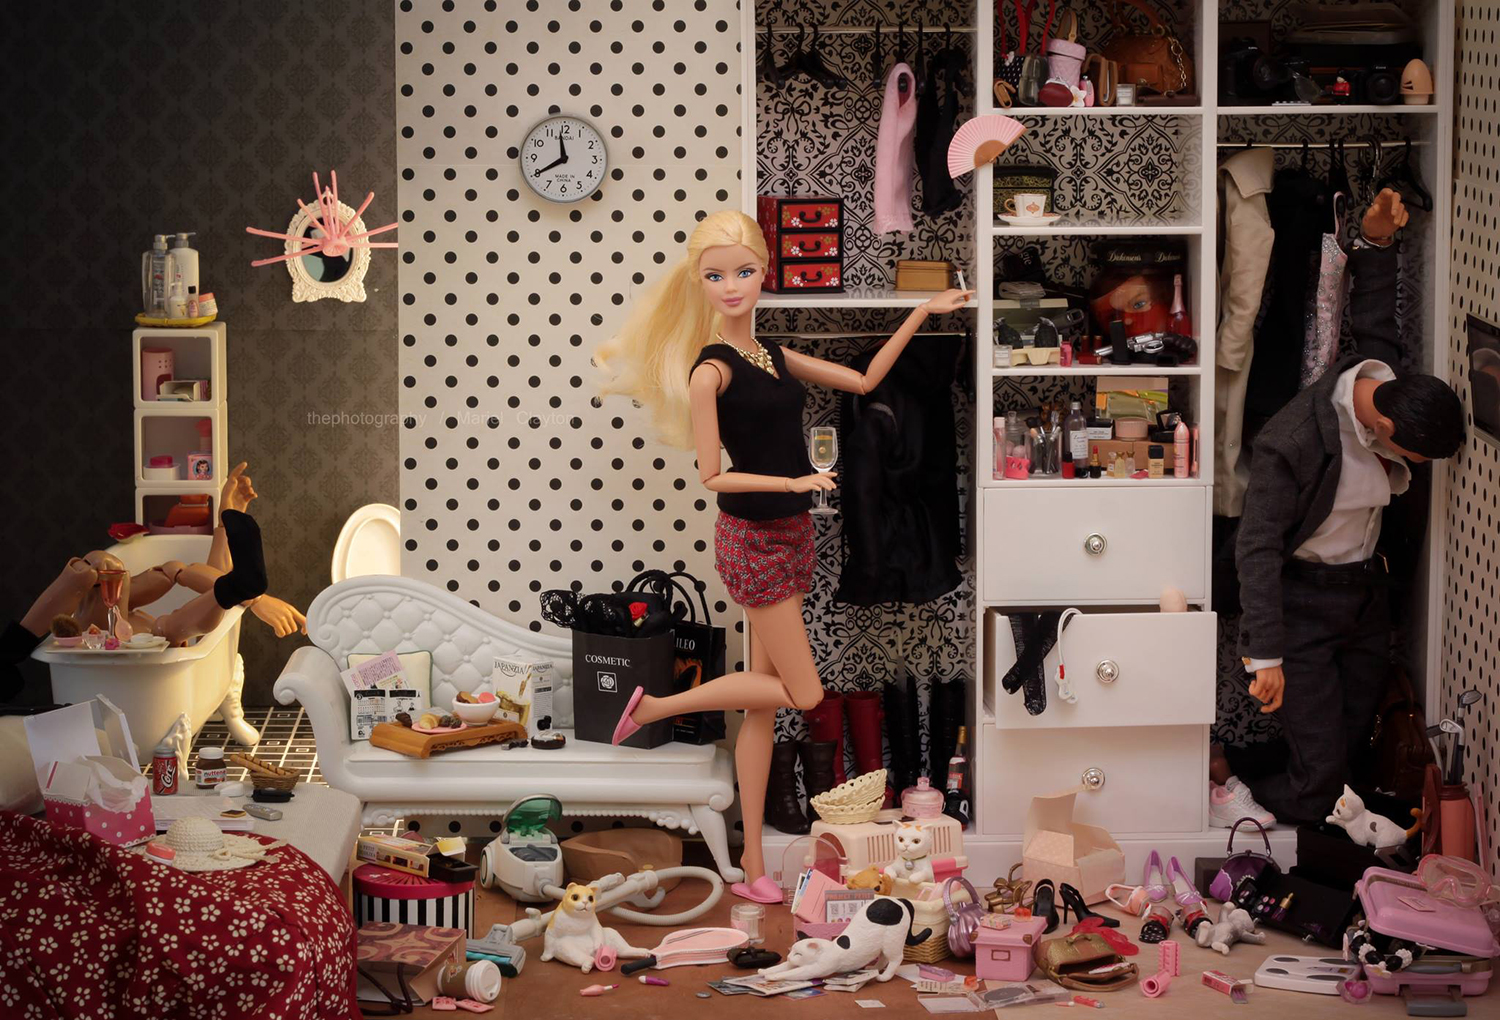 Mariel Clayton - doll in bedroom with bodies